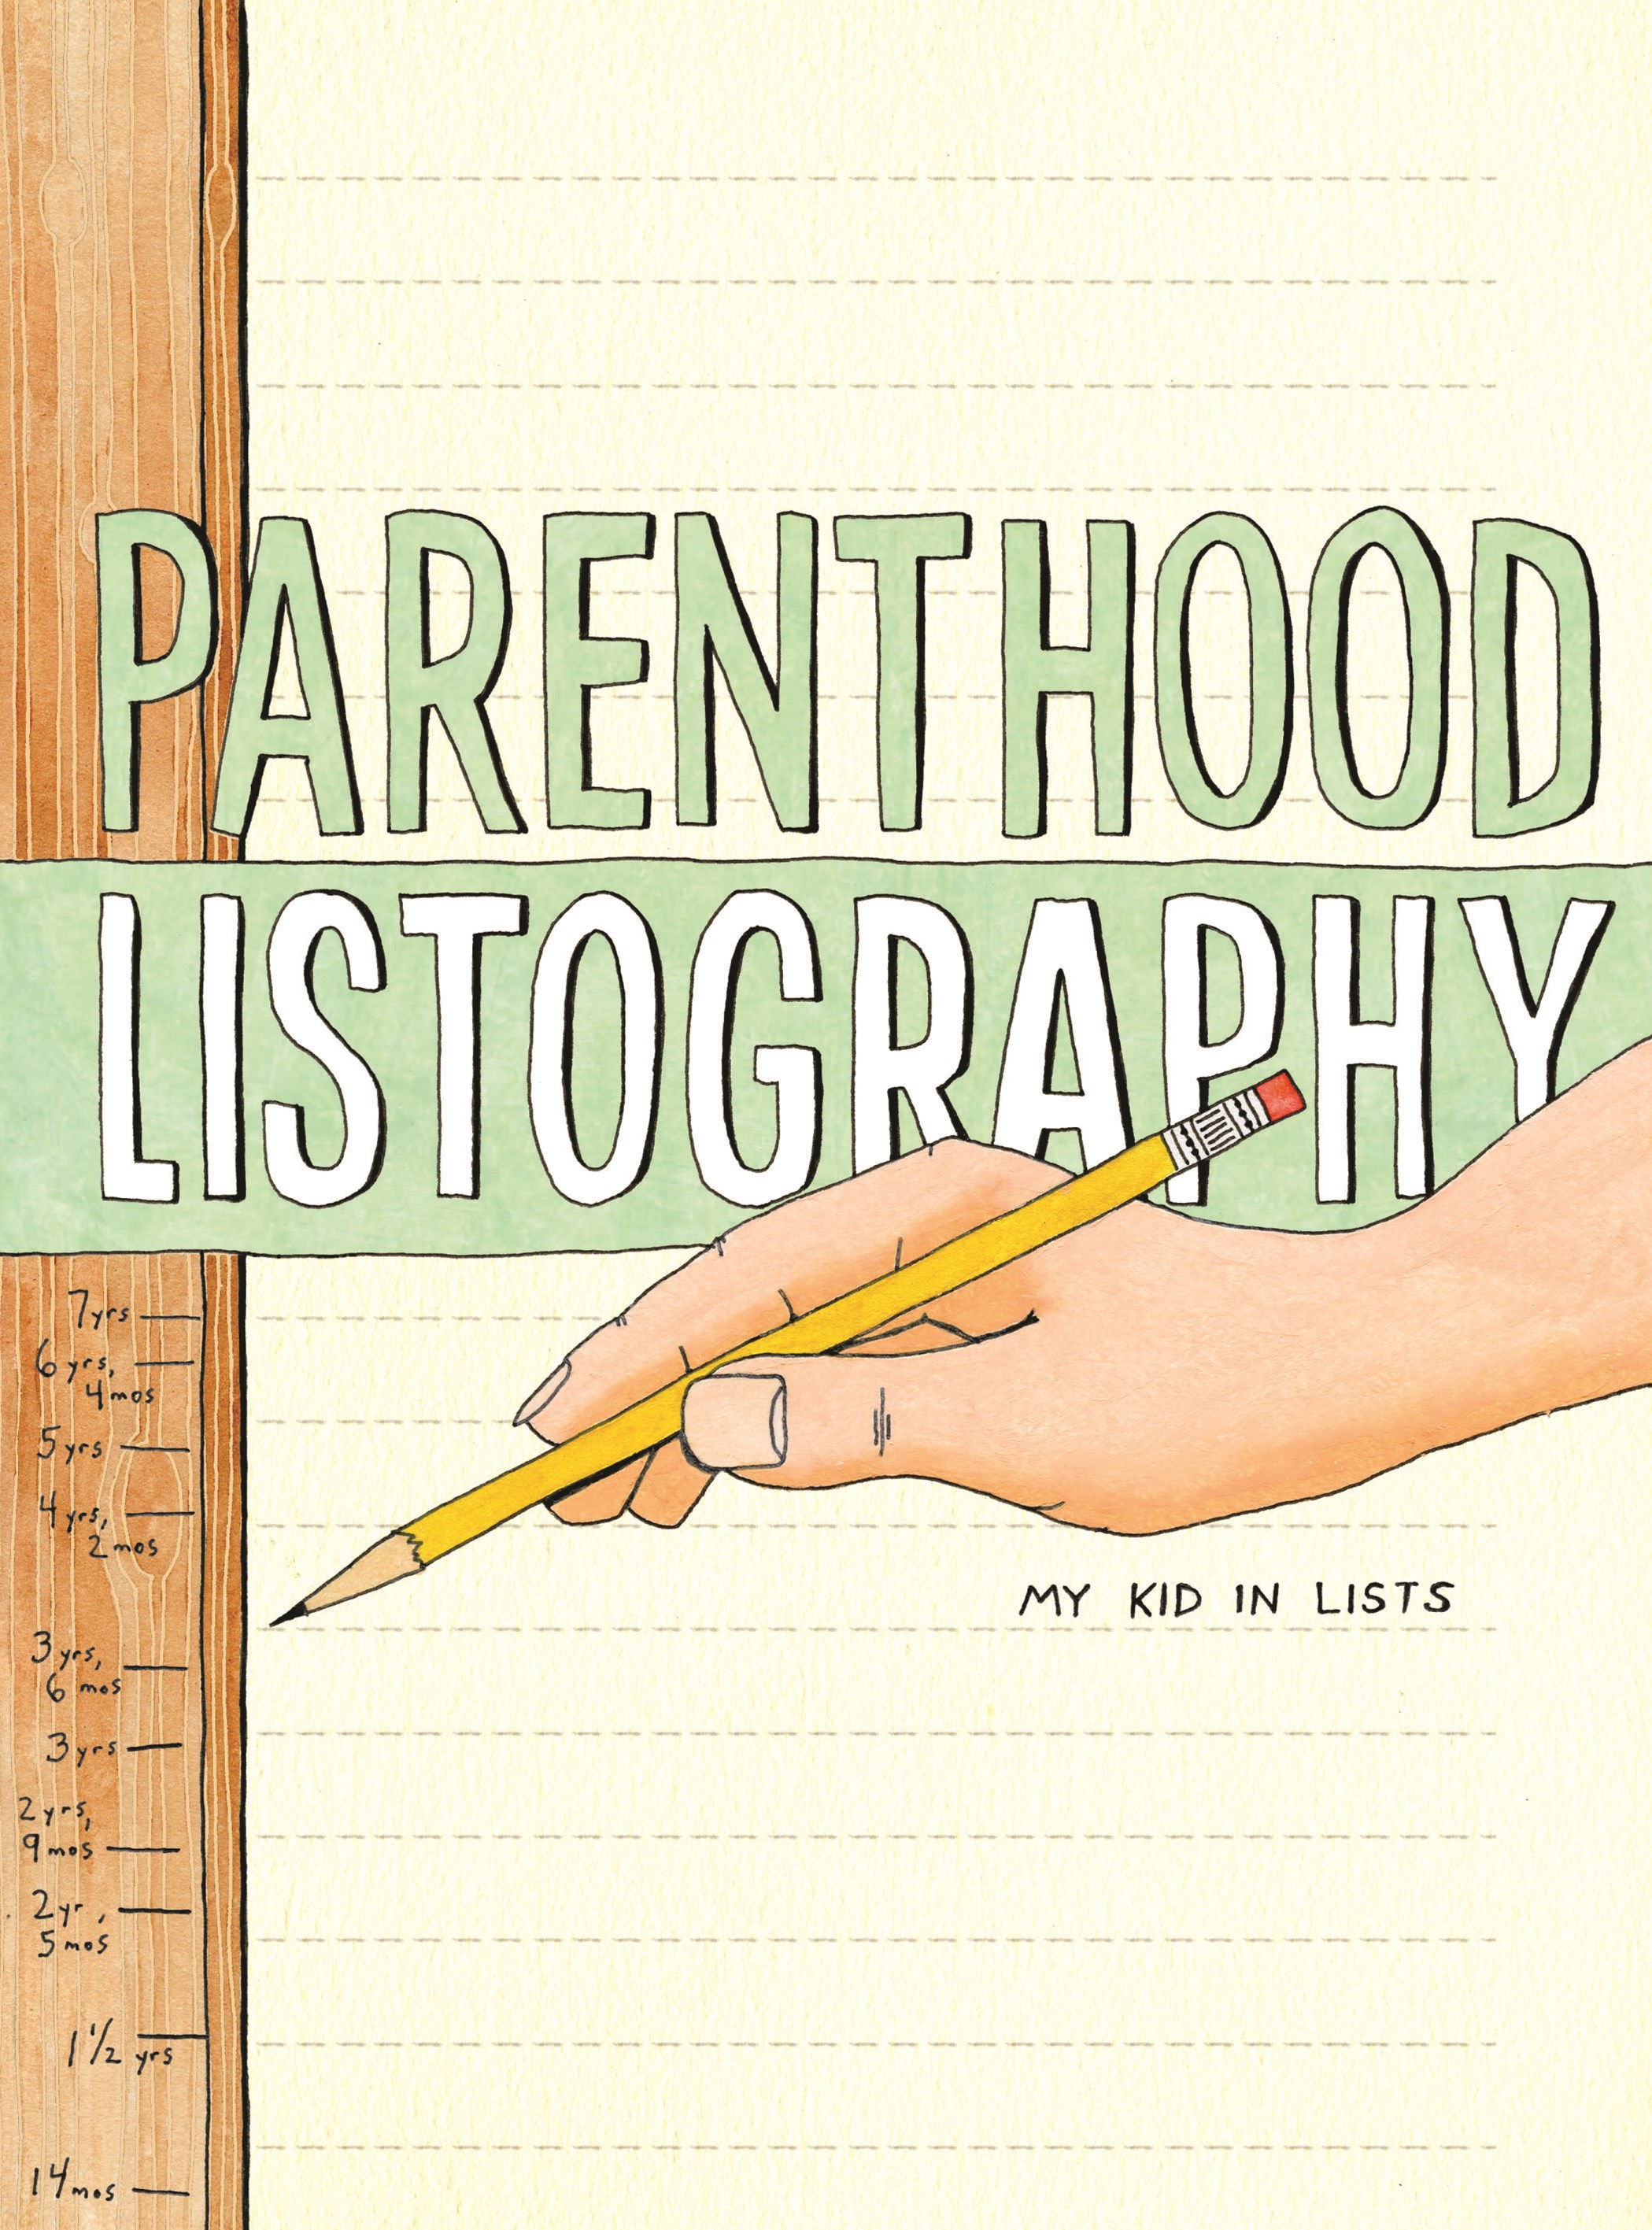 Parenthood Listography